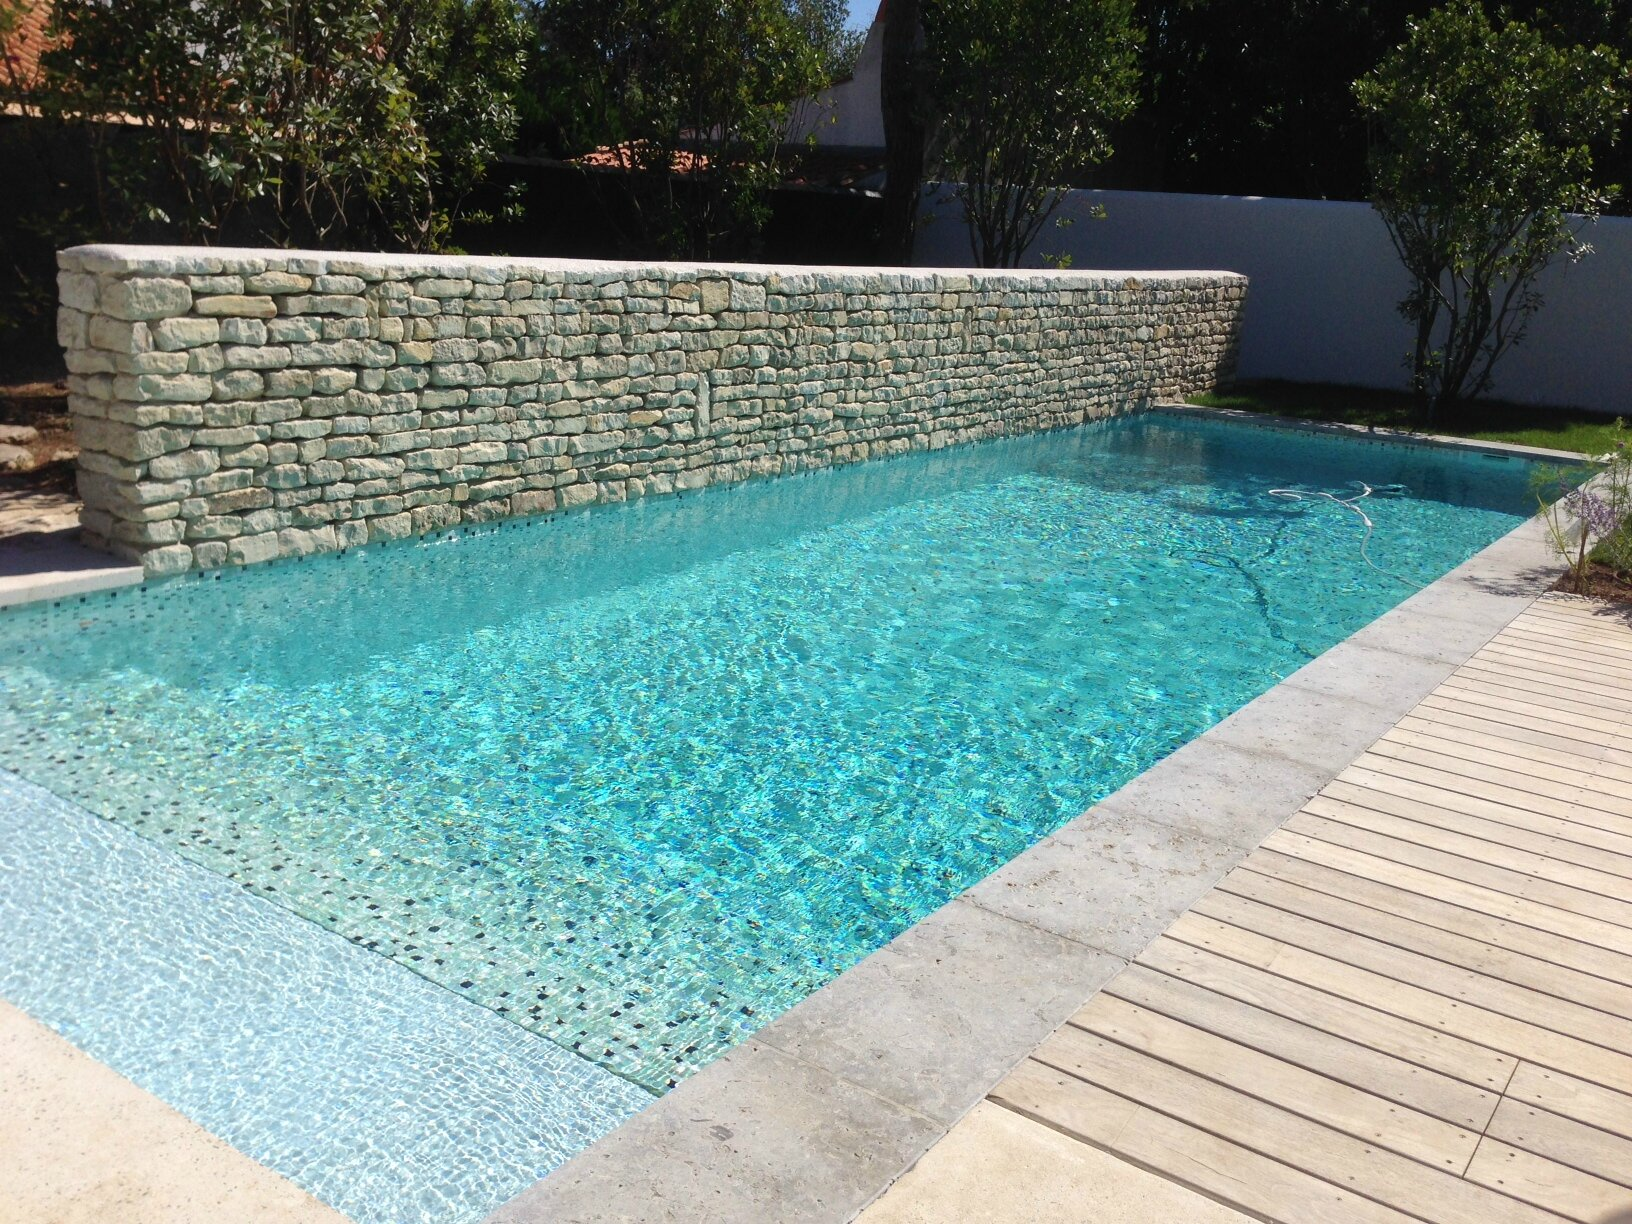 Amenager Sa Piscine Amazing Home Ideas freetattoosdesign